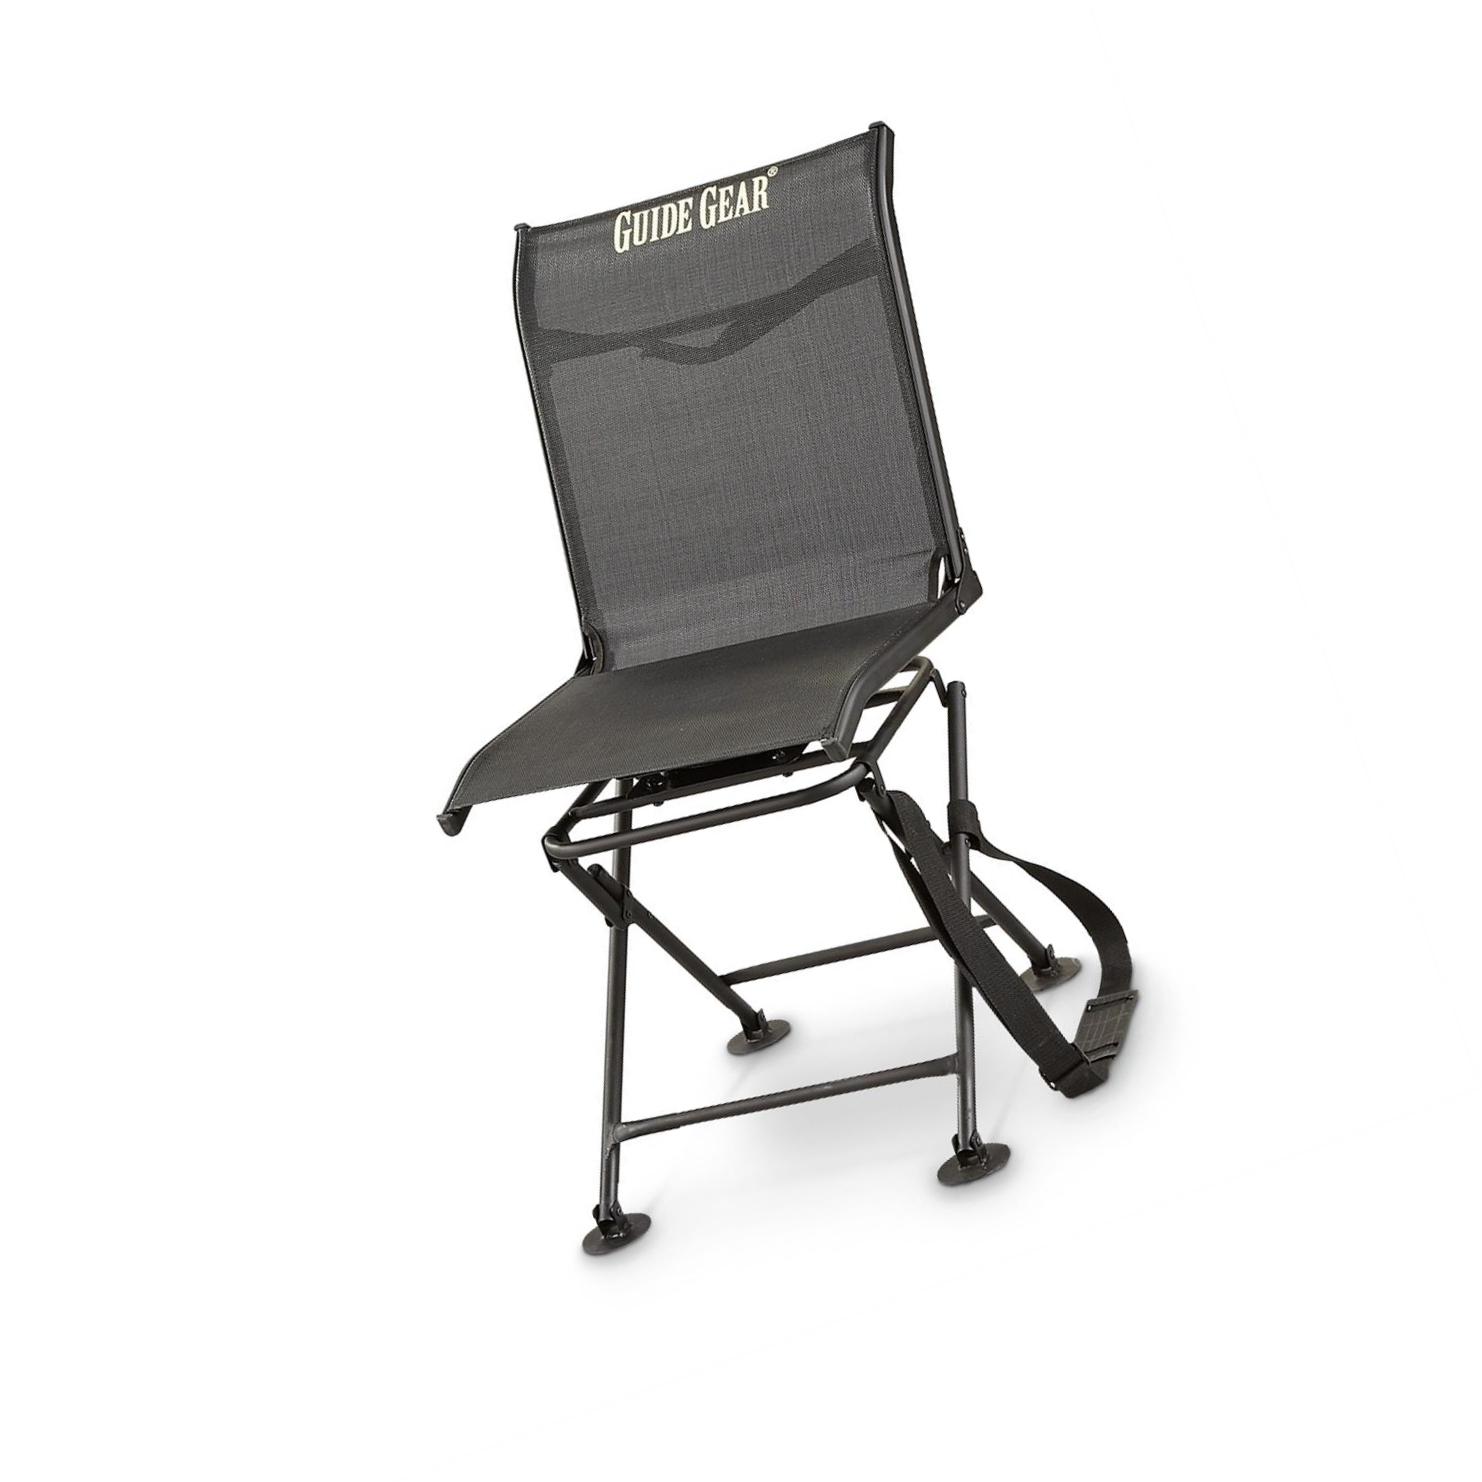 Outstanding Details About Hunting Blind Chair 360 Degree Silent Swivel Easy Carry Wide Feet Holds 300 Lbs Inzonedesignstudio Interior Chair Design Inzonedesignstudiocom